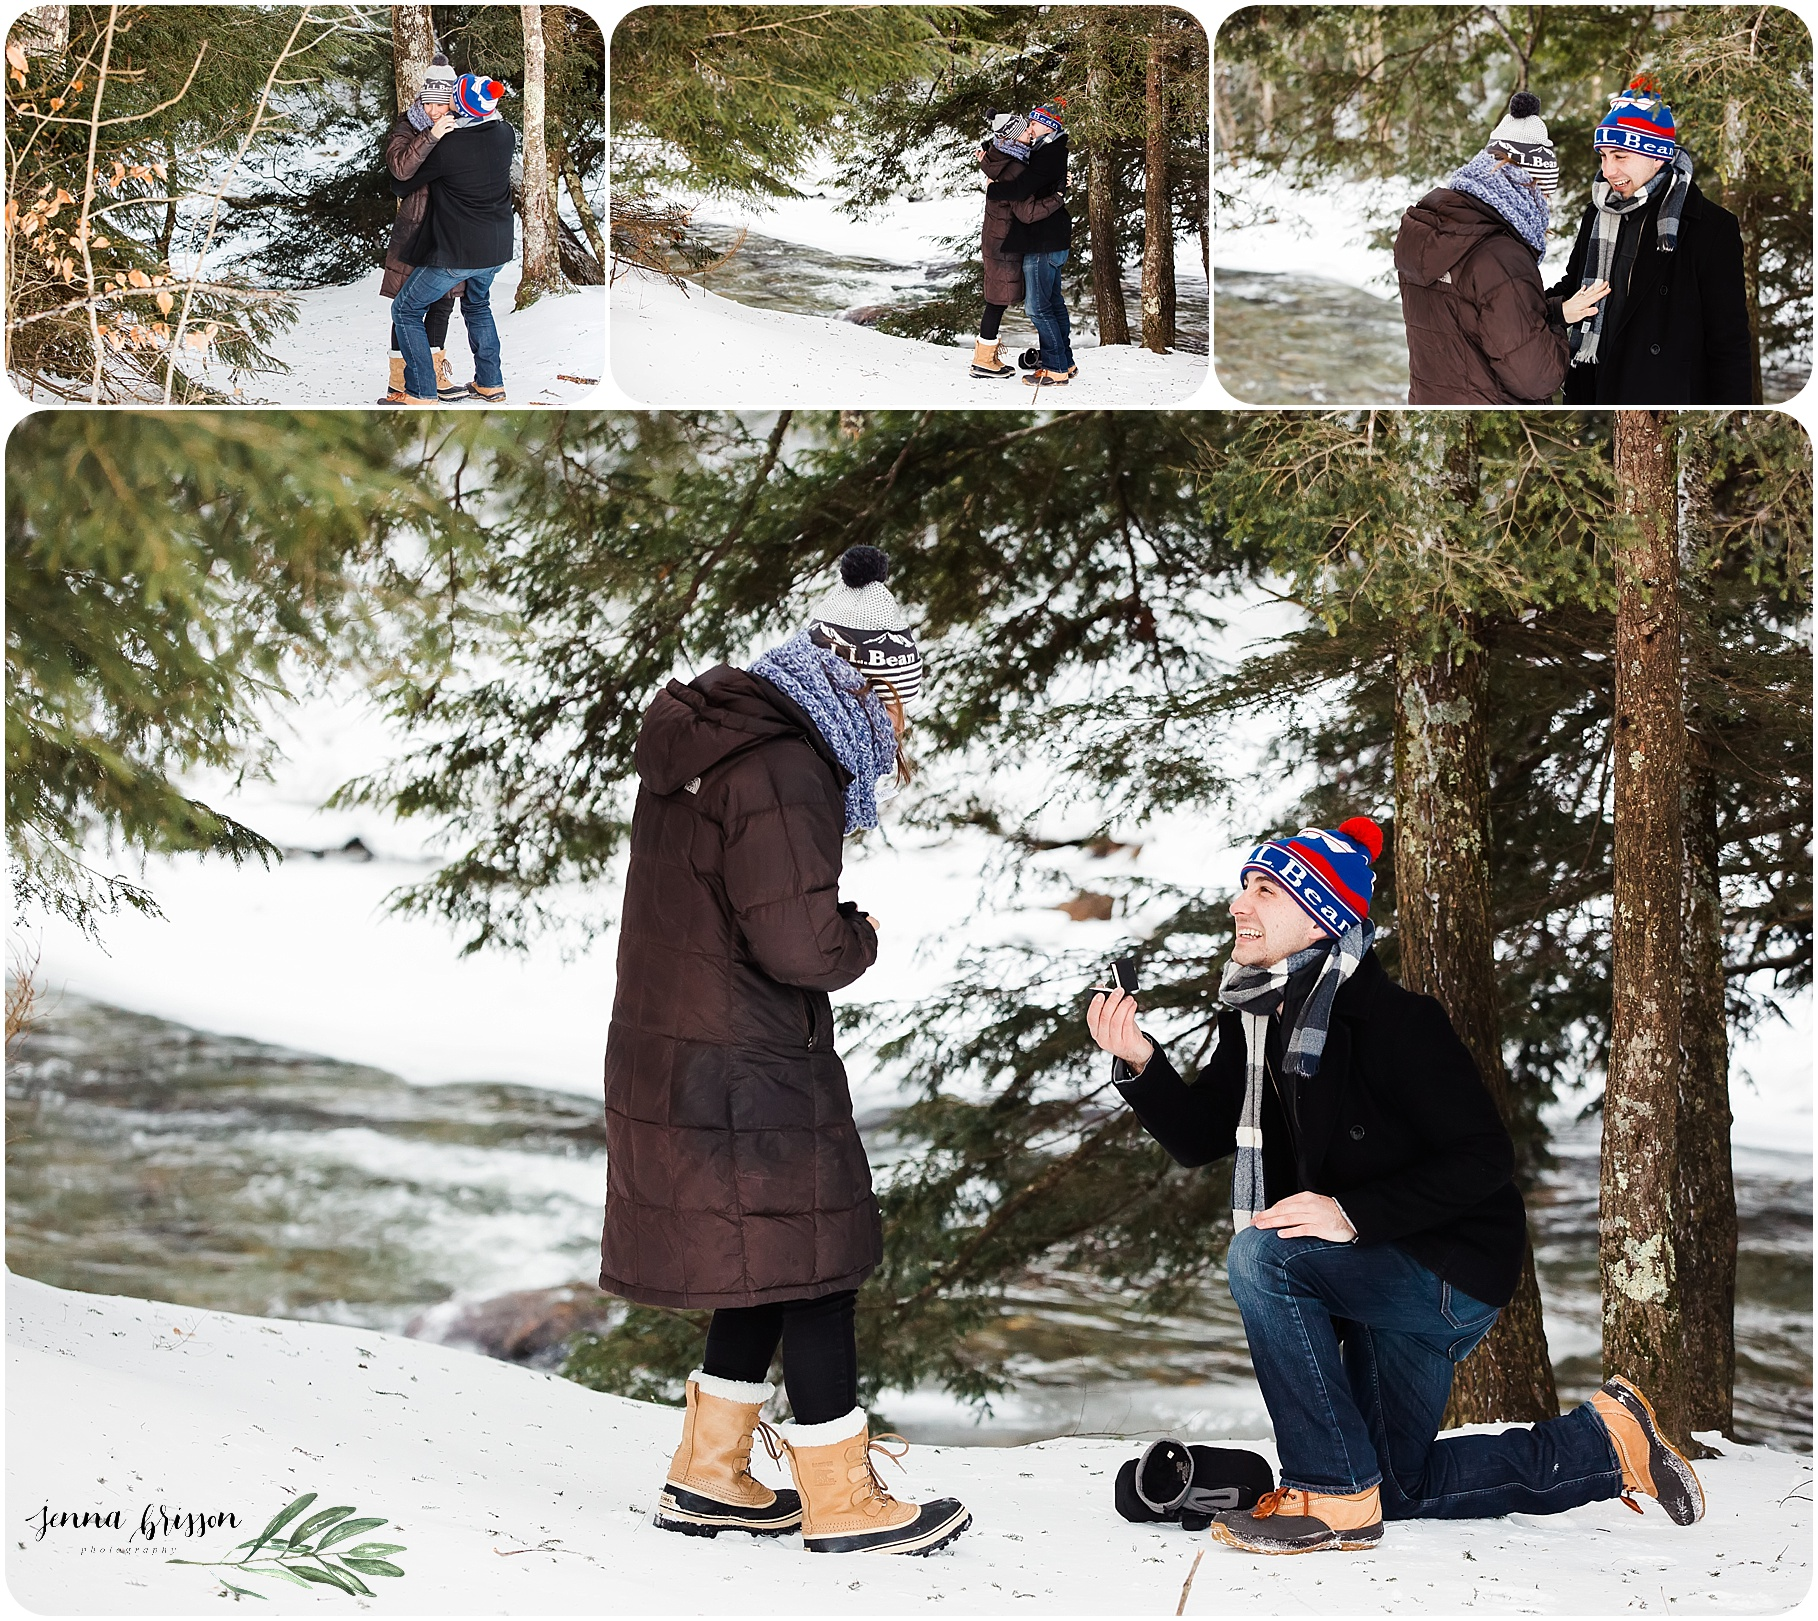 Proposal Photography Session - Stowe, Vermont - Jenna Brisson Photography